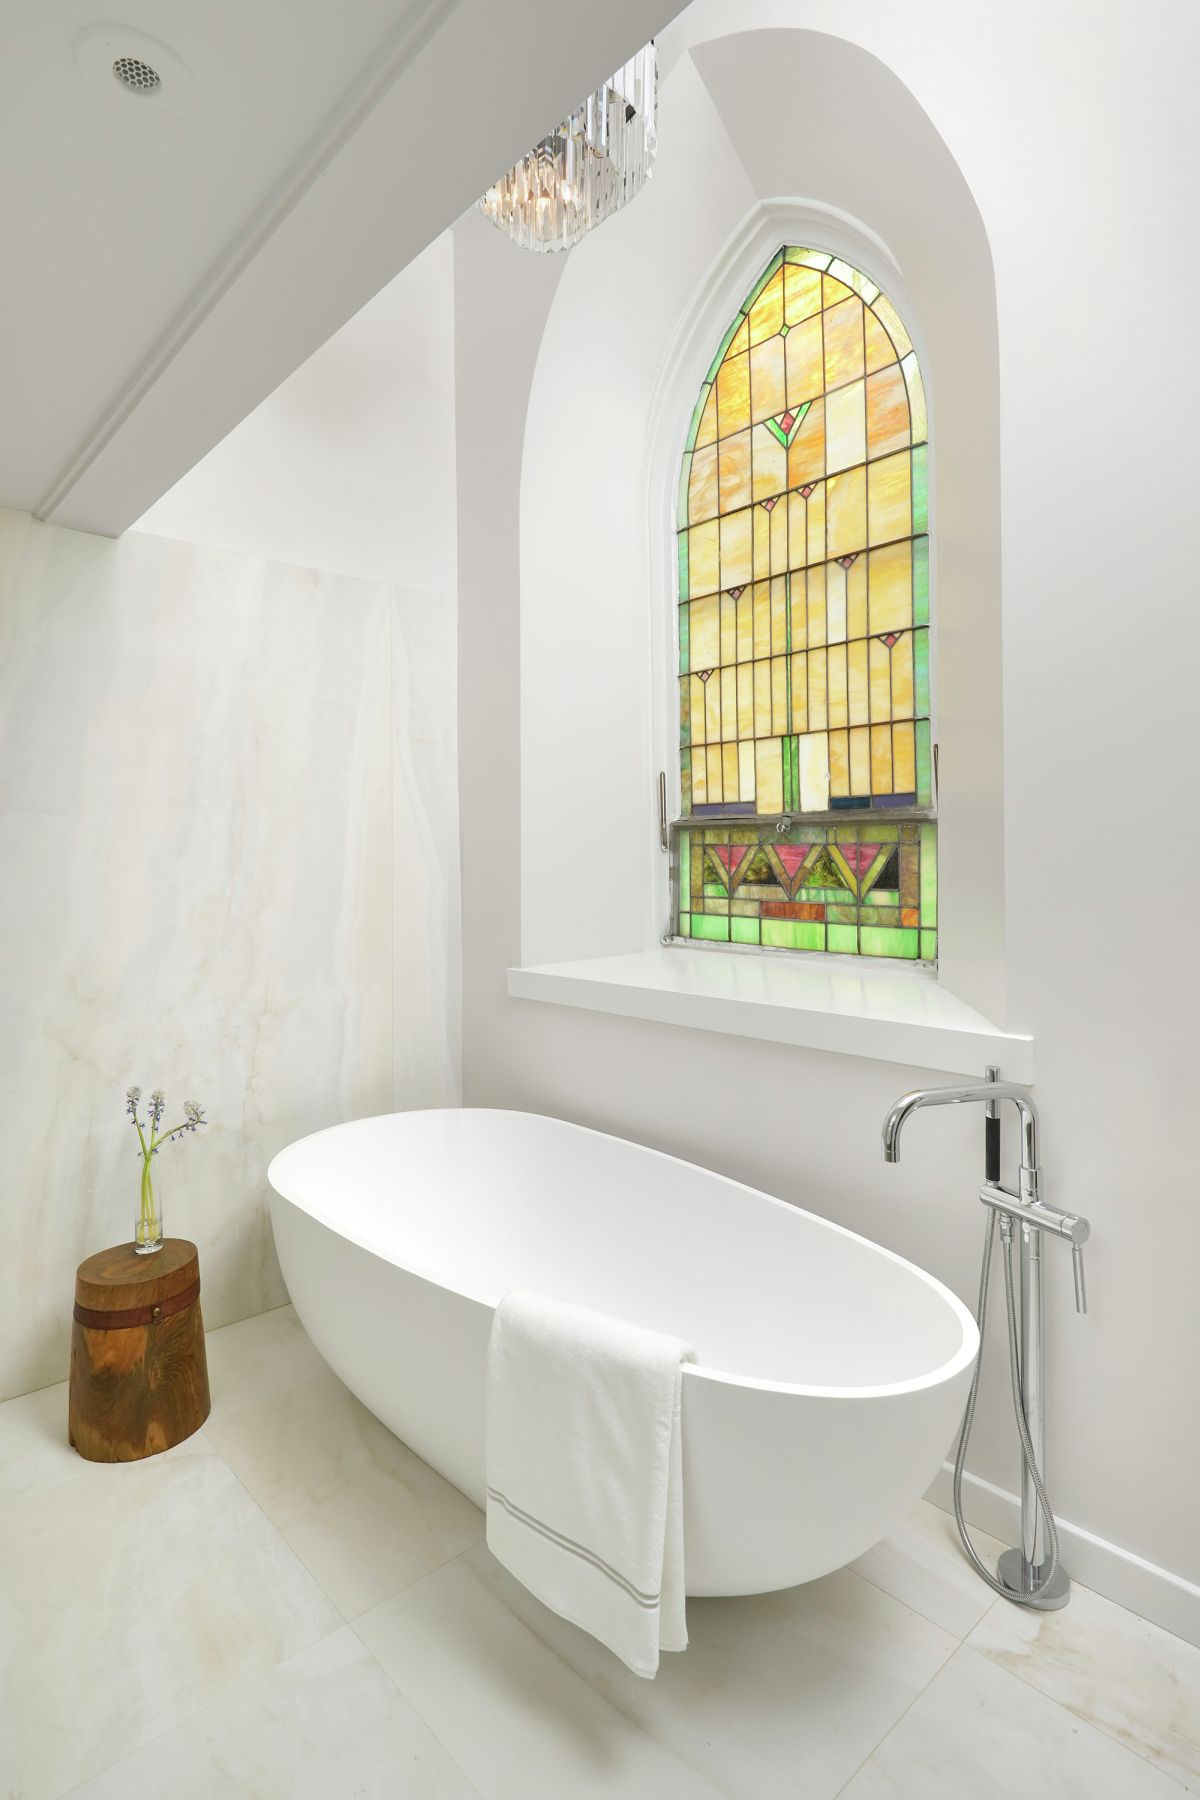 Church Conversion into a Residence Freestanding tub